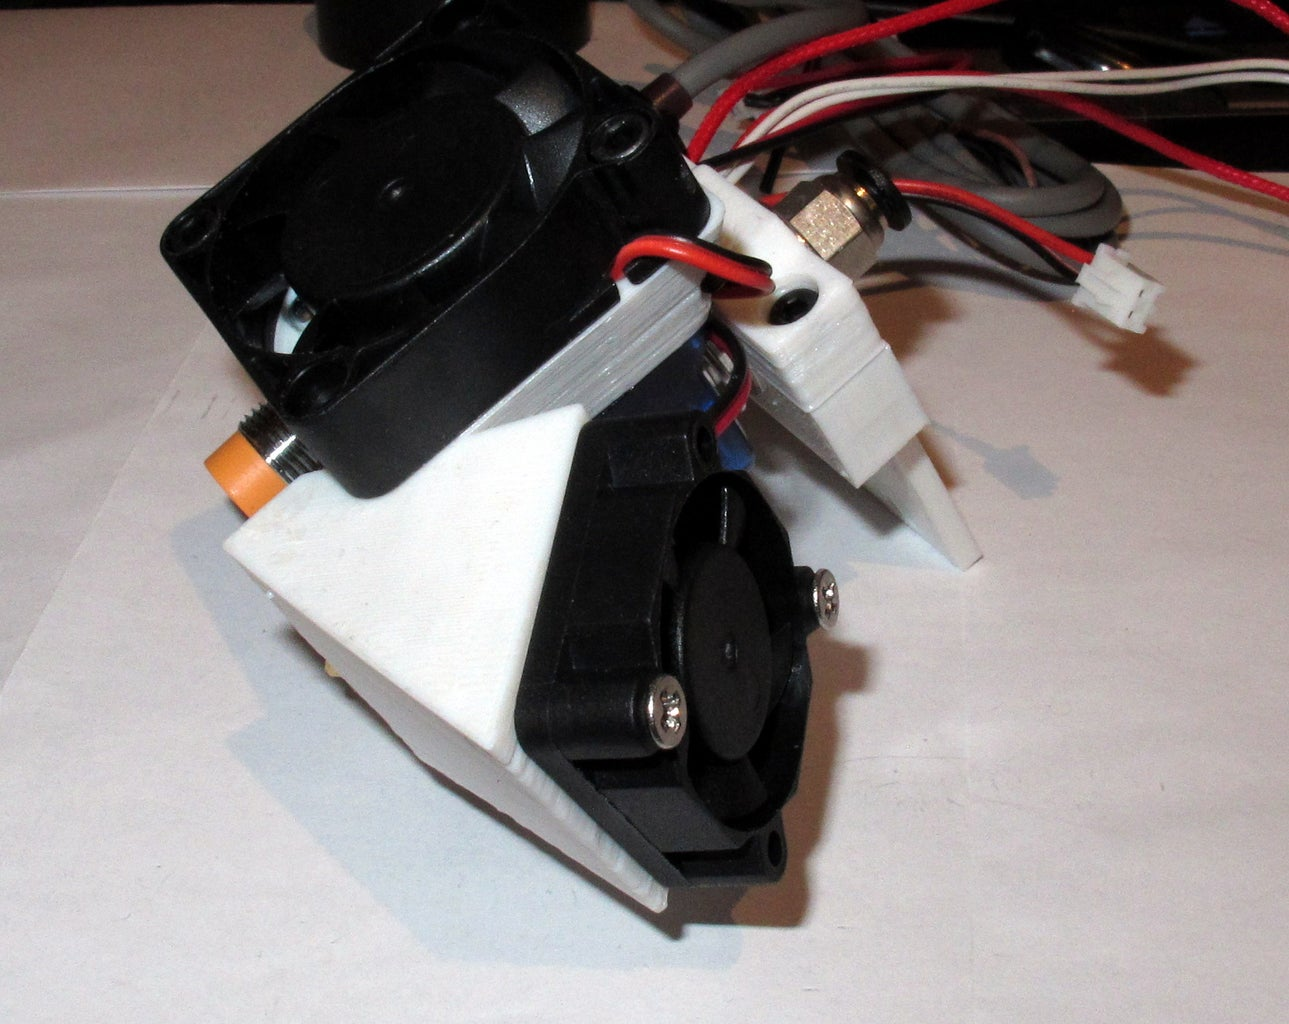 Adding Parts Cooling Fan to Your 3D Printer